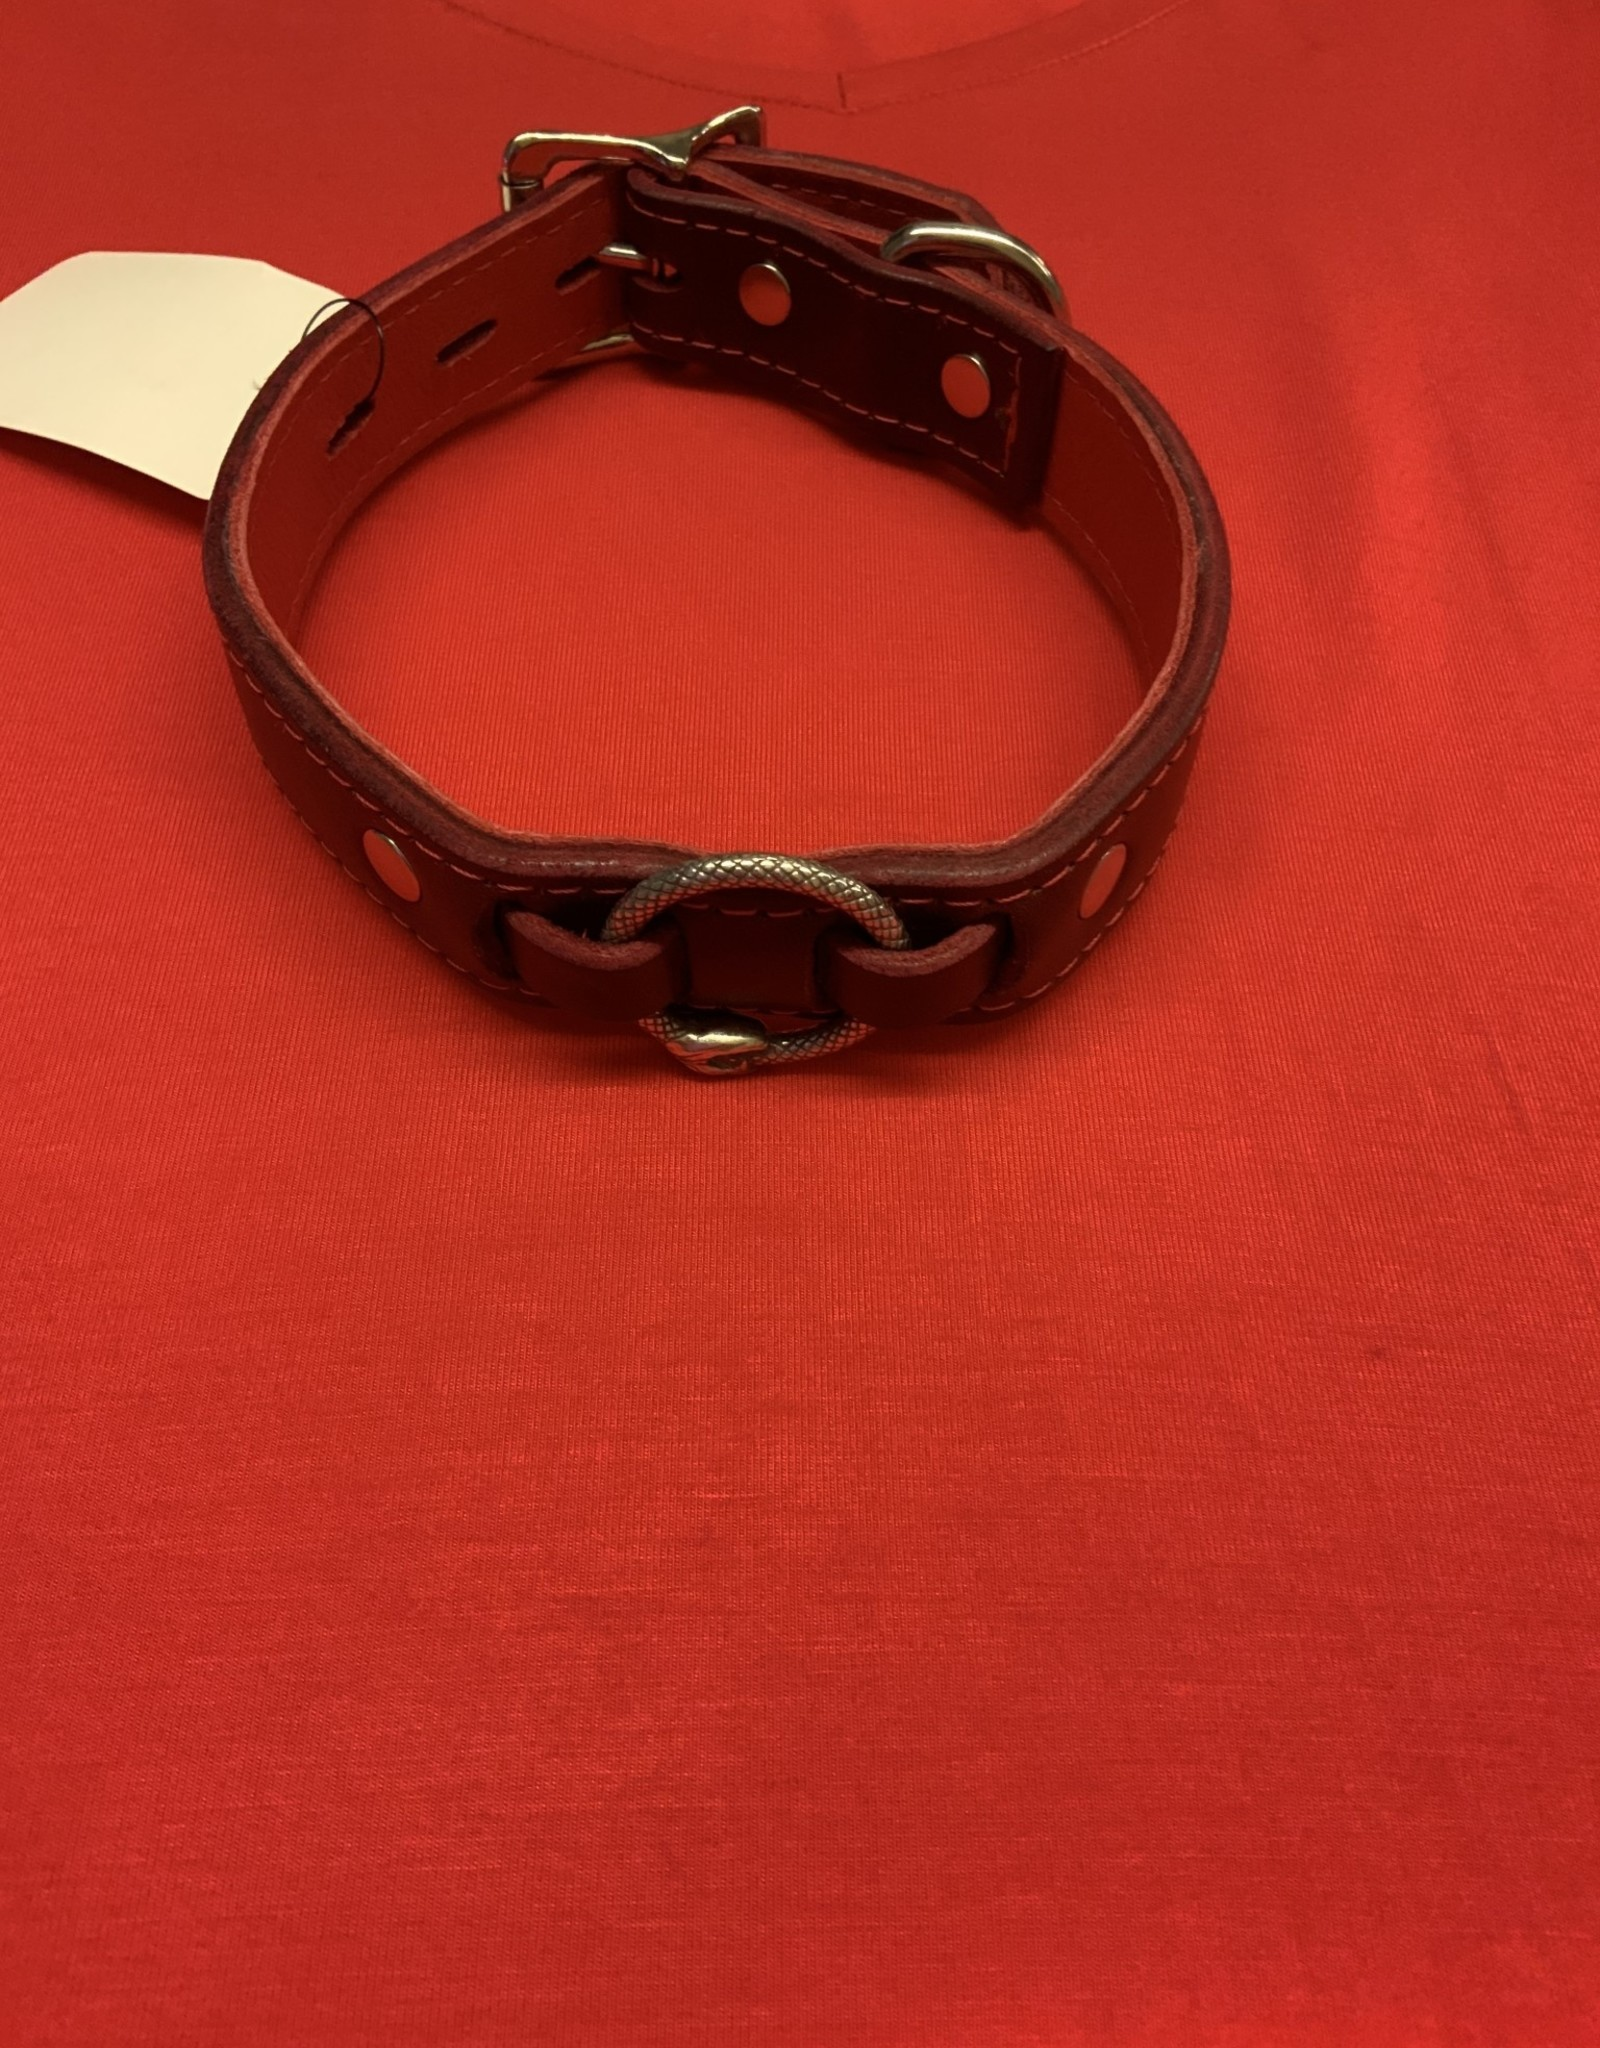 The Leather Union Snake Collar